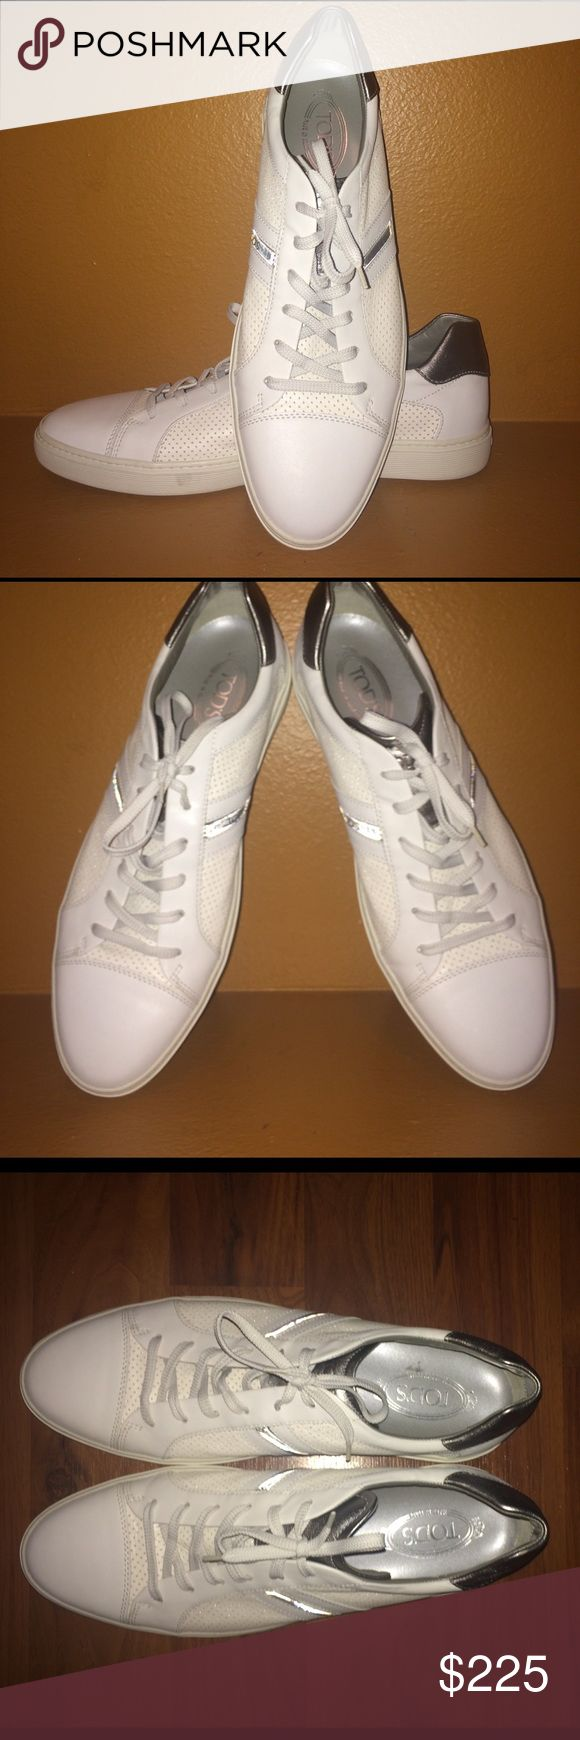 Mens casual sneaker, worn twice. White and grey TOD's sneaker. NO trades posh in app offers only. Tod's Shoes Sneakers